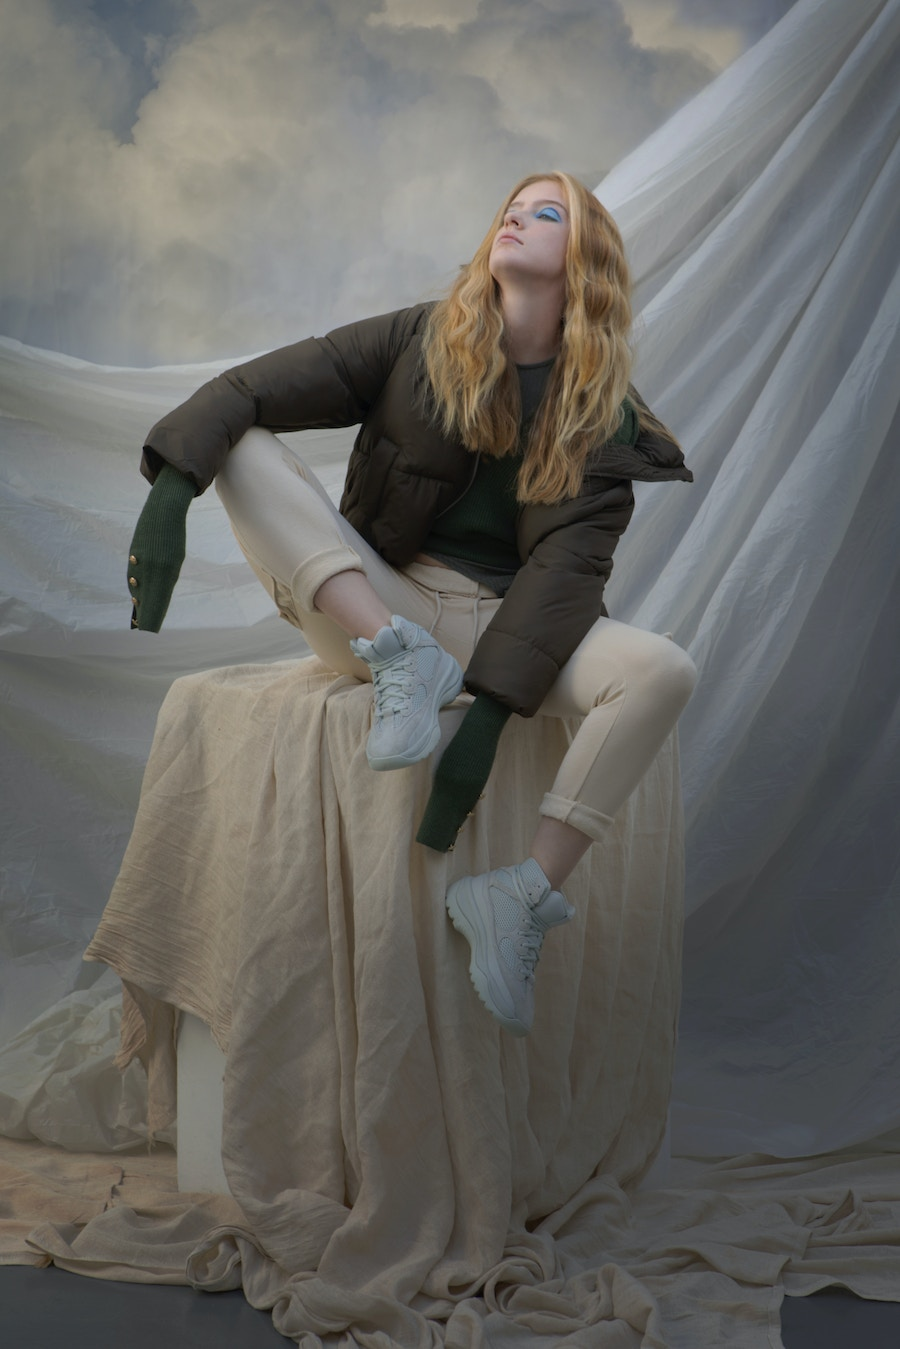 A model sitting on a cloth covered pedestal in front of a cloud background